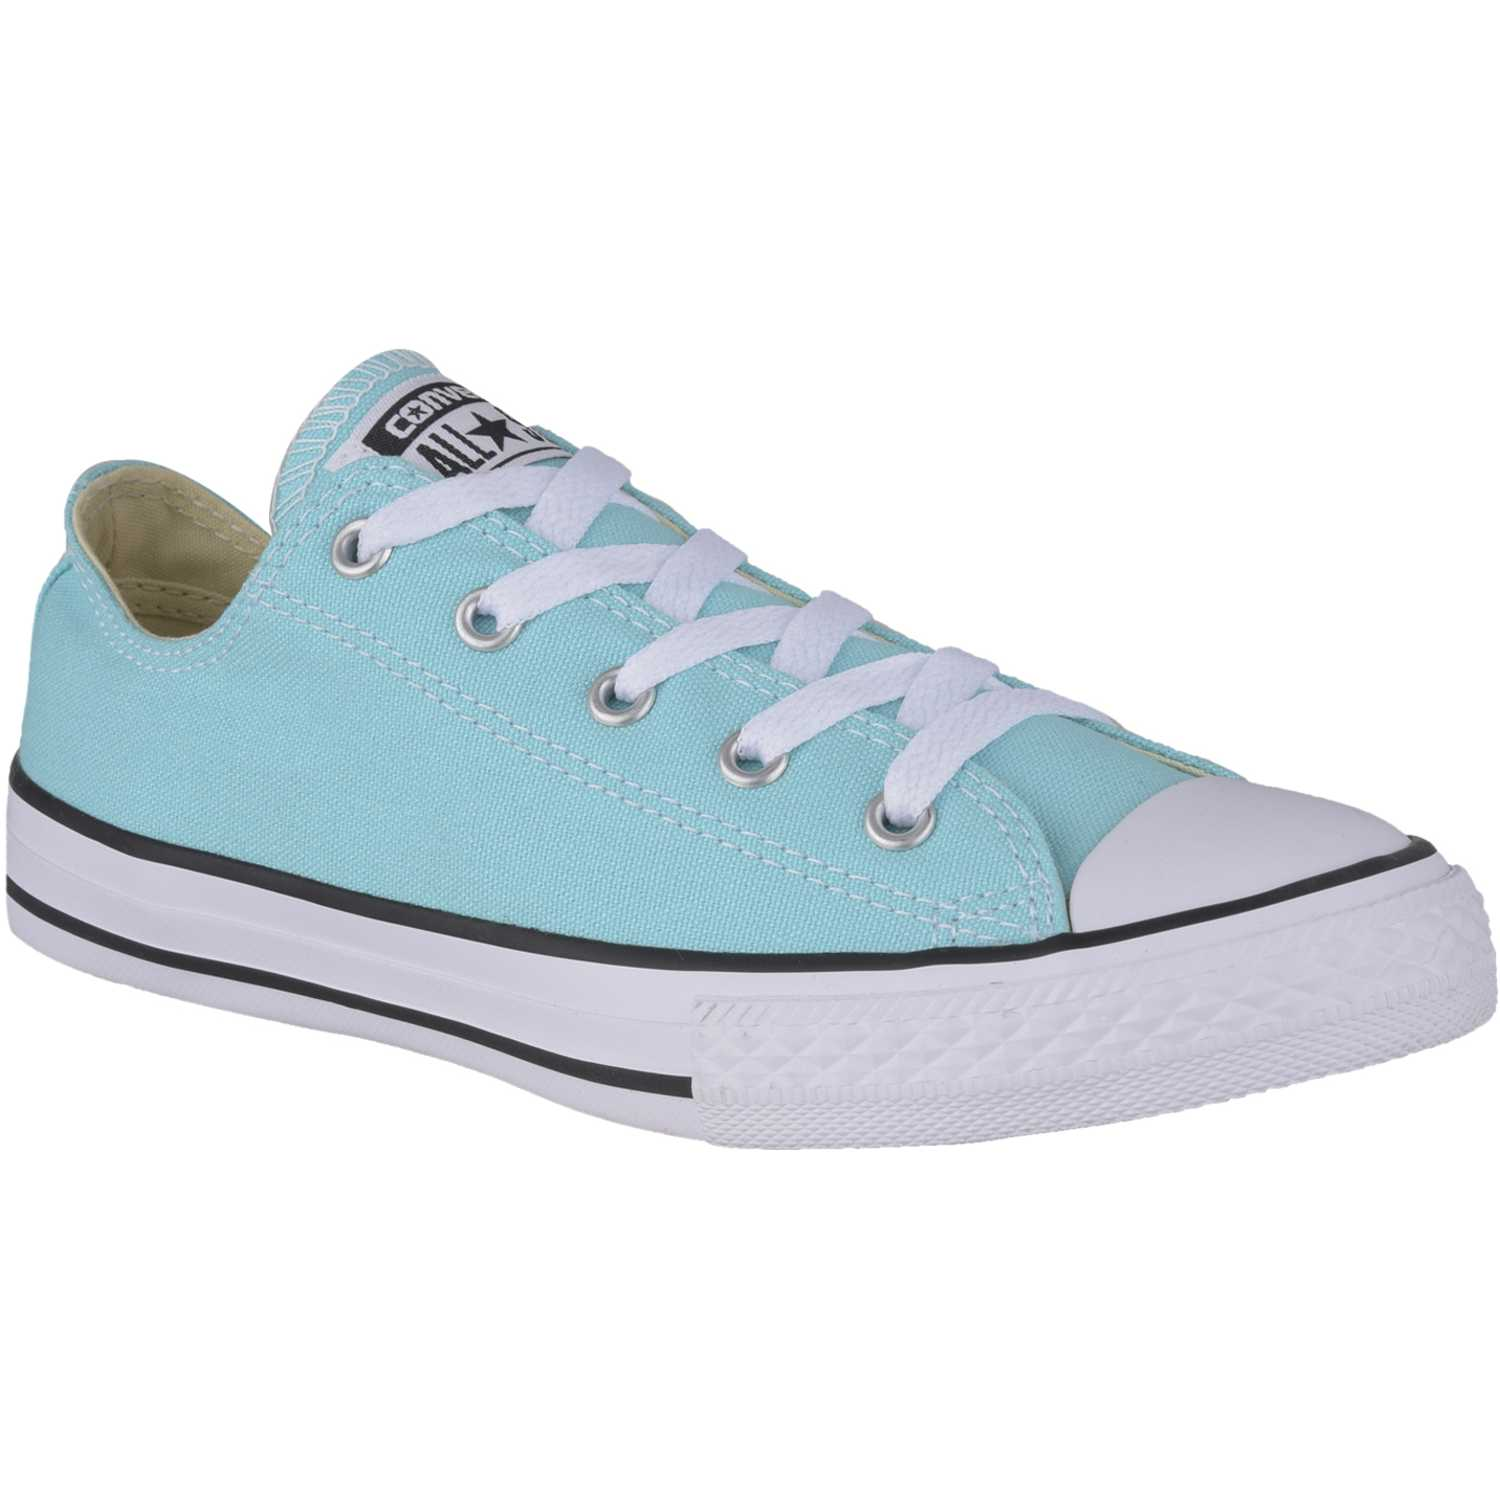 Zapatilla de Niña Converse Aqua ct as seasonal